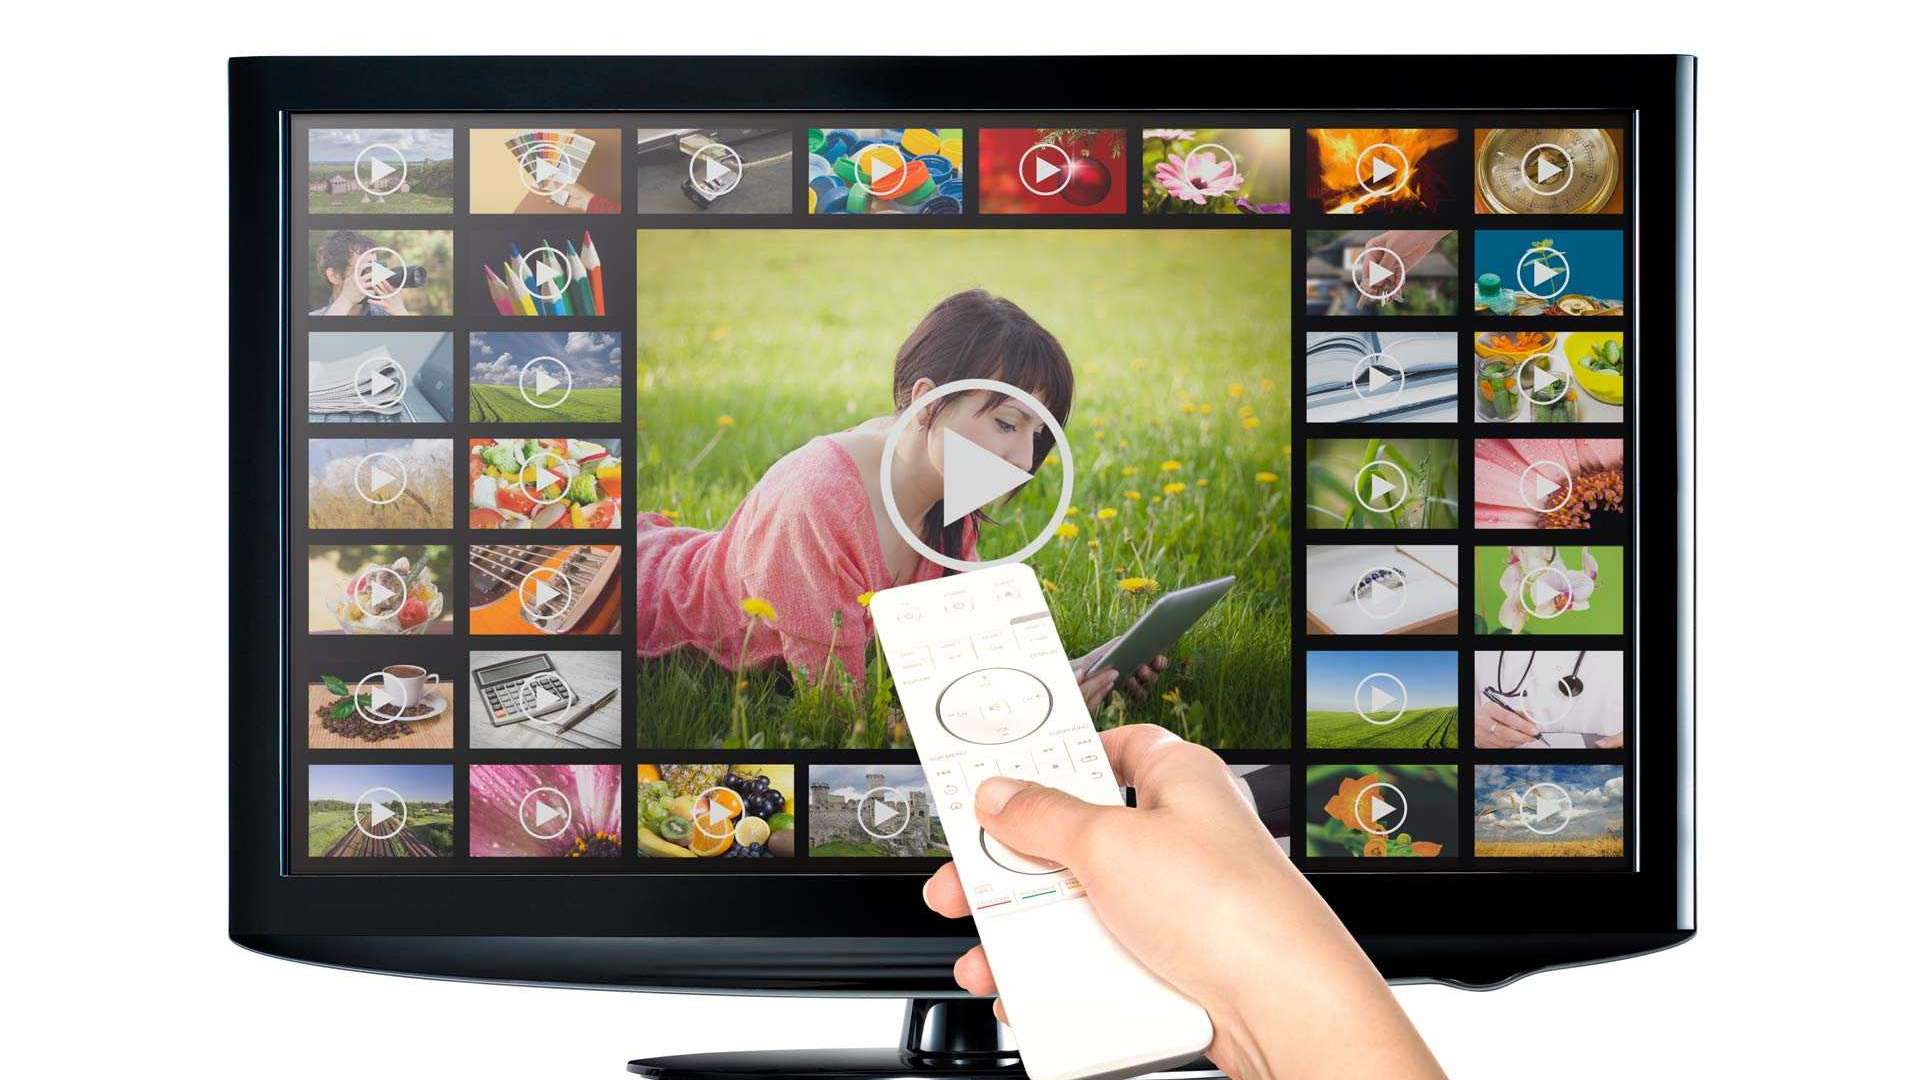 Internet use over TV will change the way we consume entertainment